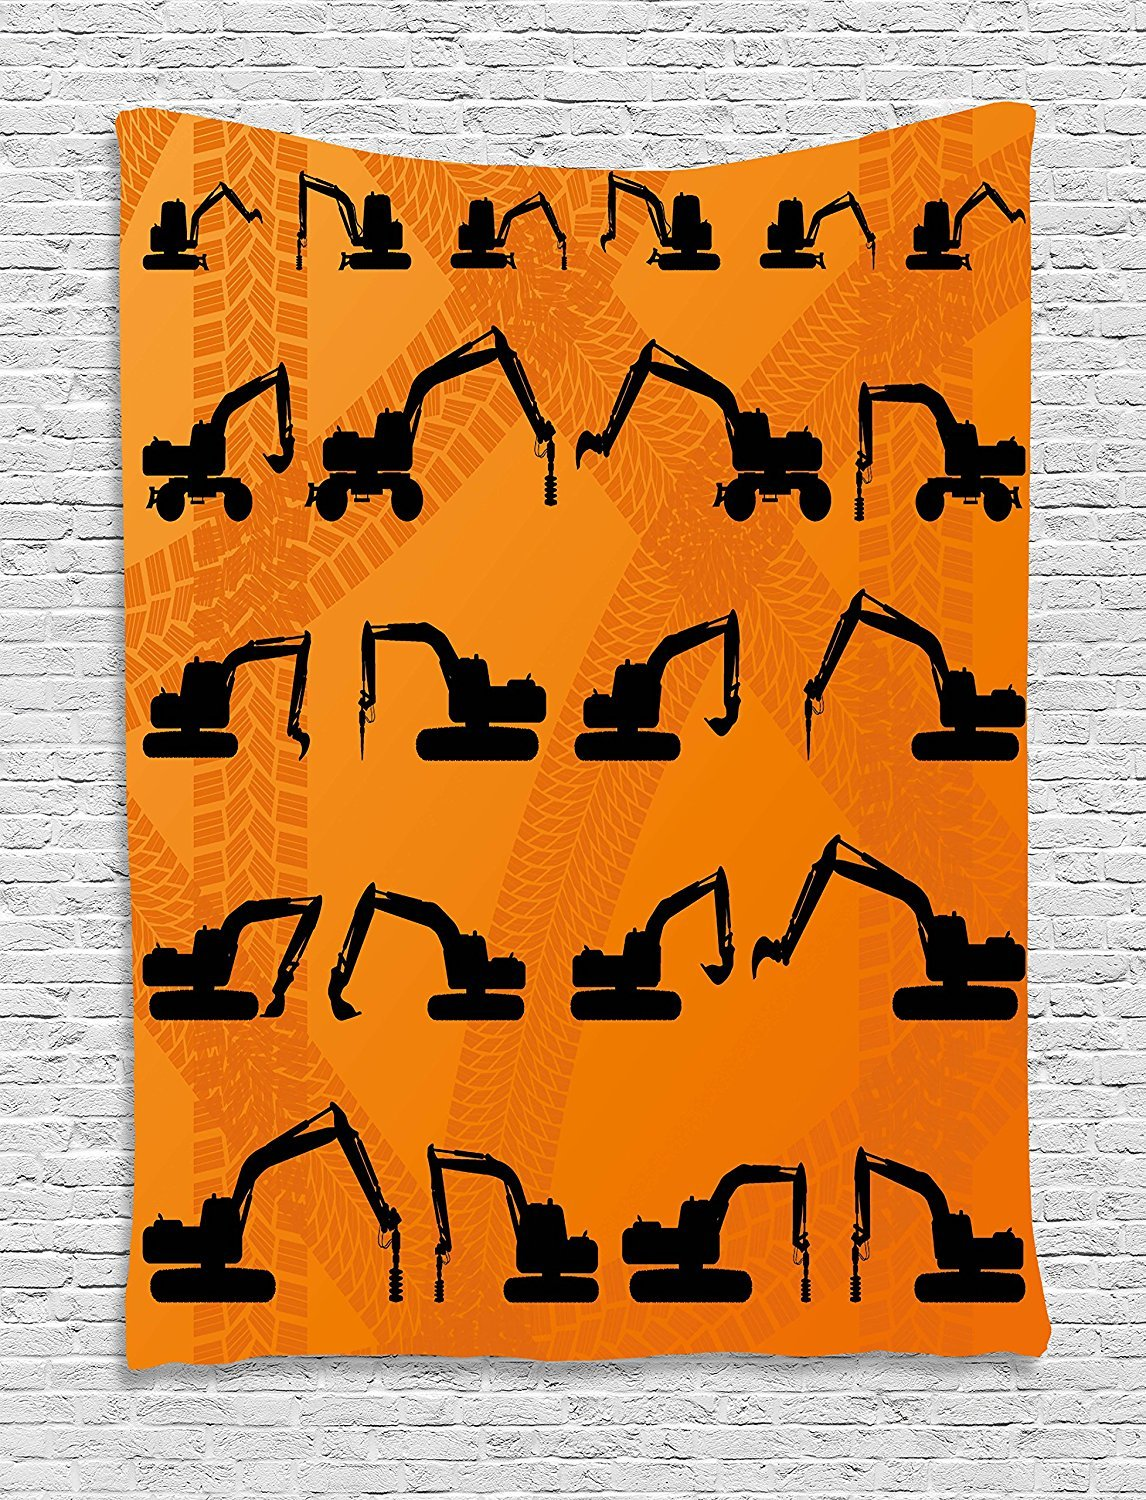 Construction Tapestry, Excavator Black Silhouettes Tire Traces Track Machinery Industry Technology, Wall Hanging for Bedroom Living Room Dorm, 60 W X 80 L Inches, Orange Black